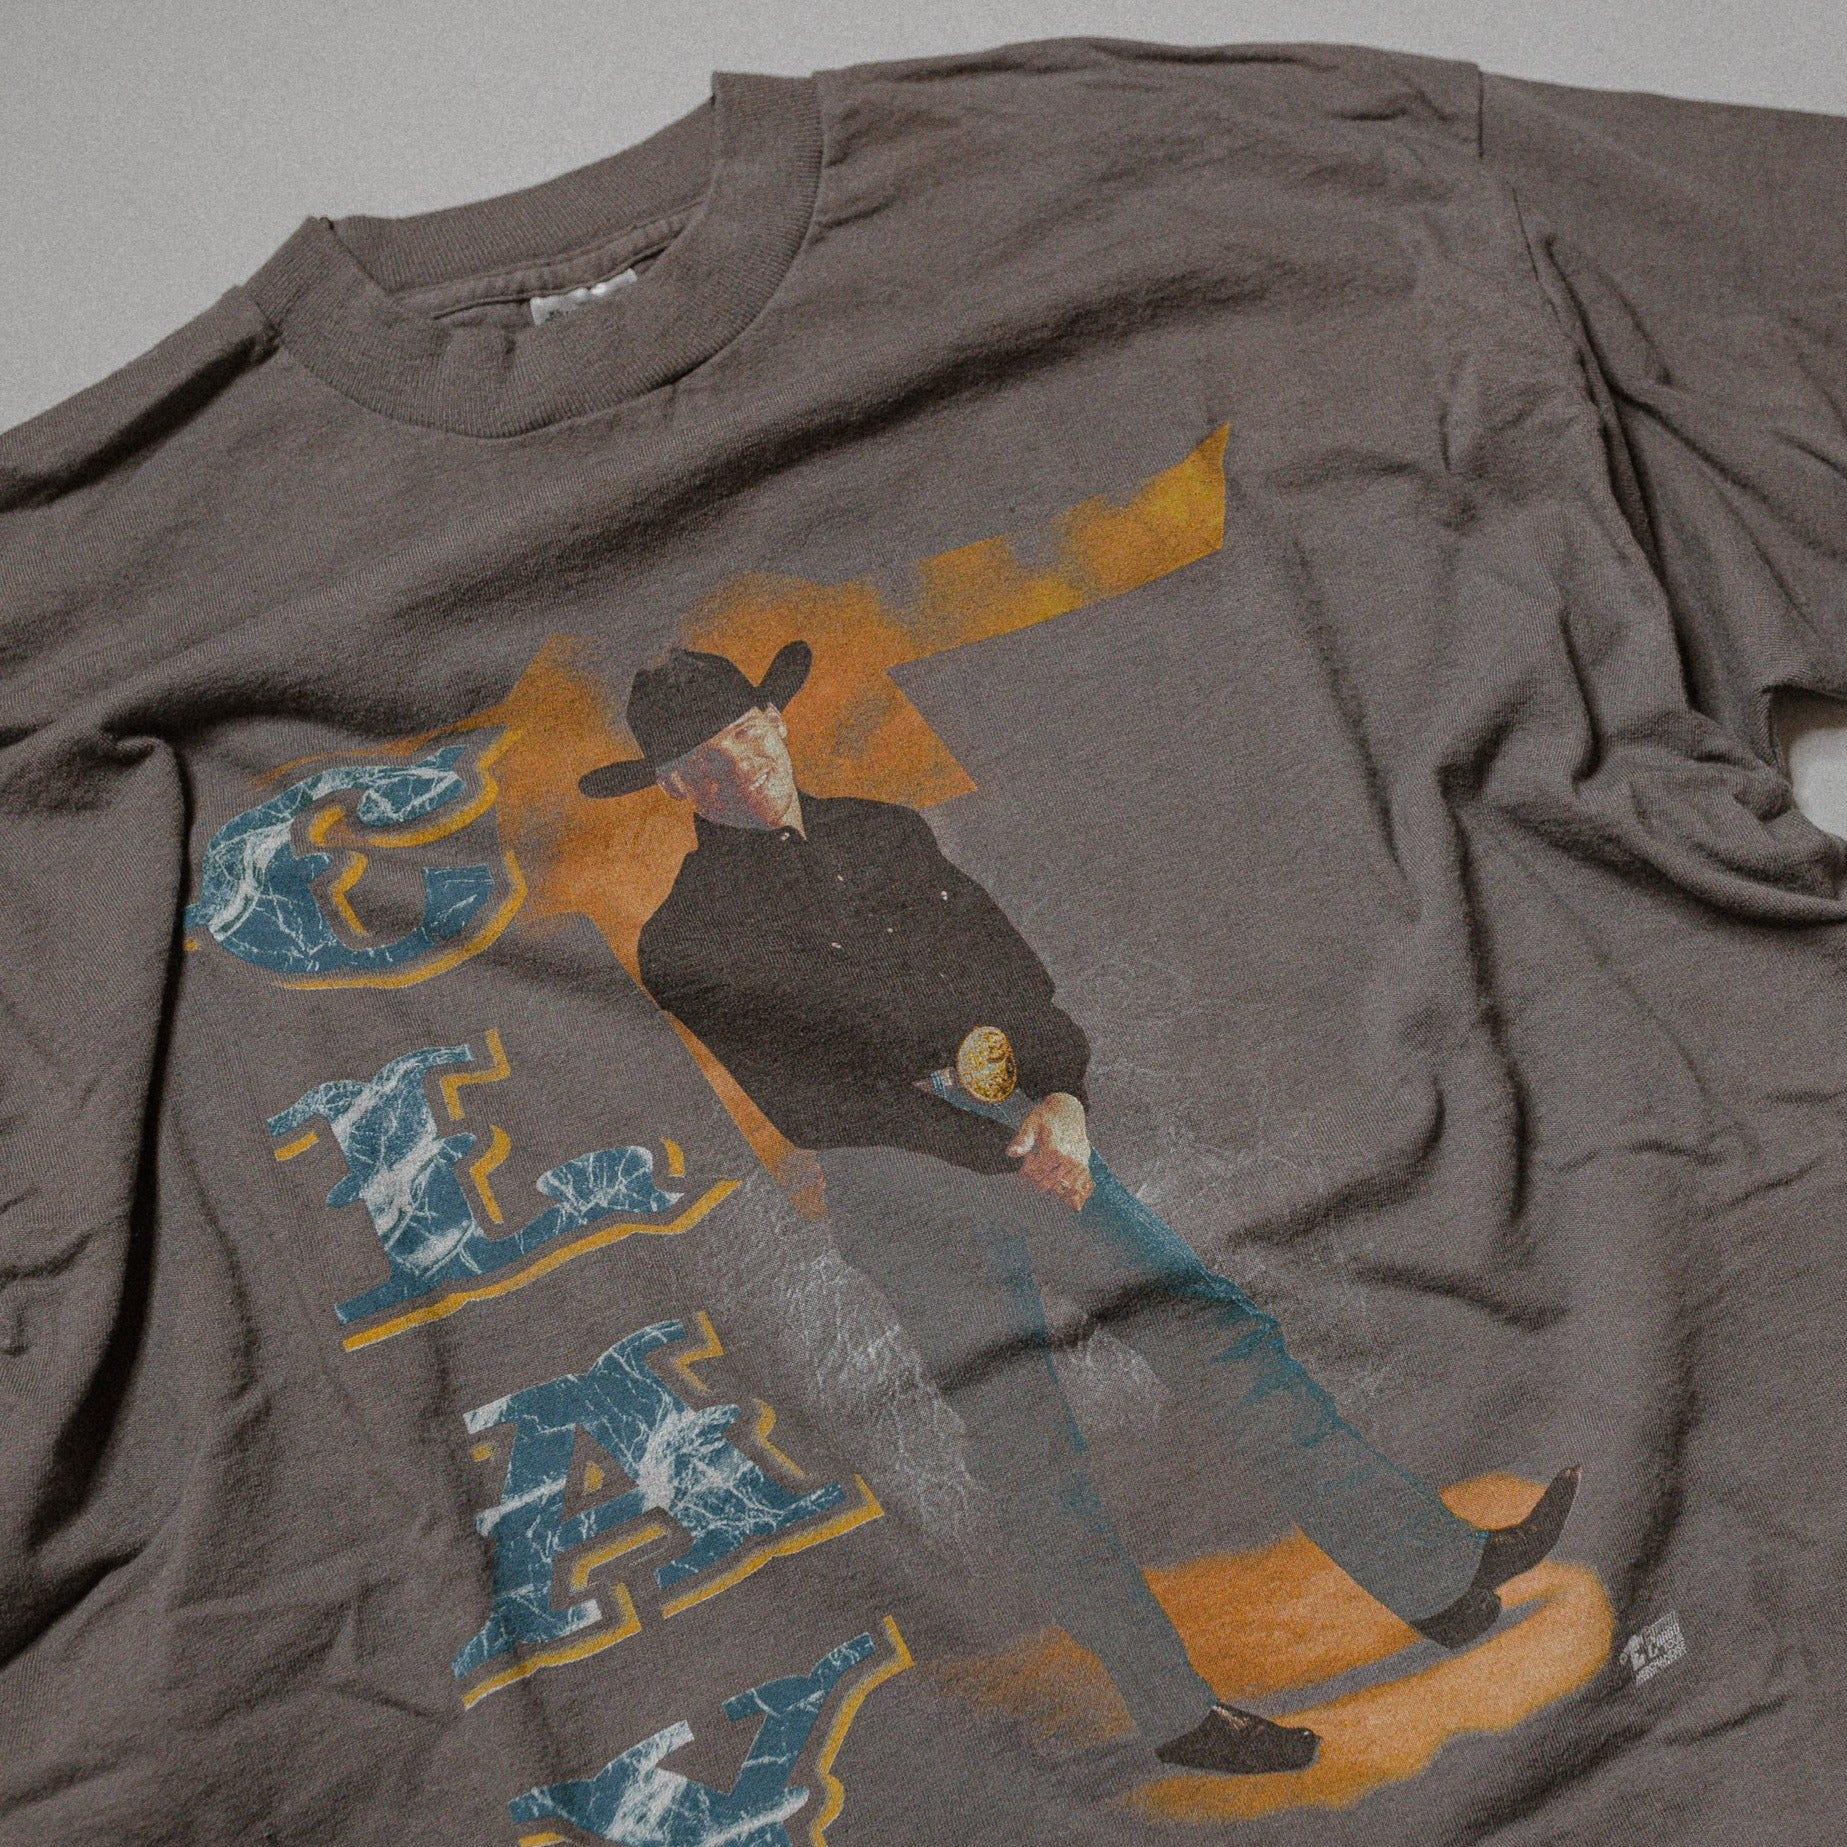 Vintage Clay Walker 1997 Four Star Blowout Tour Tee